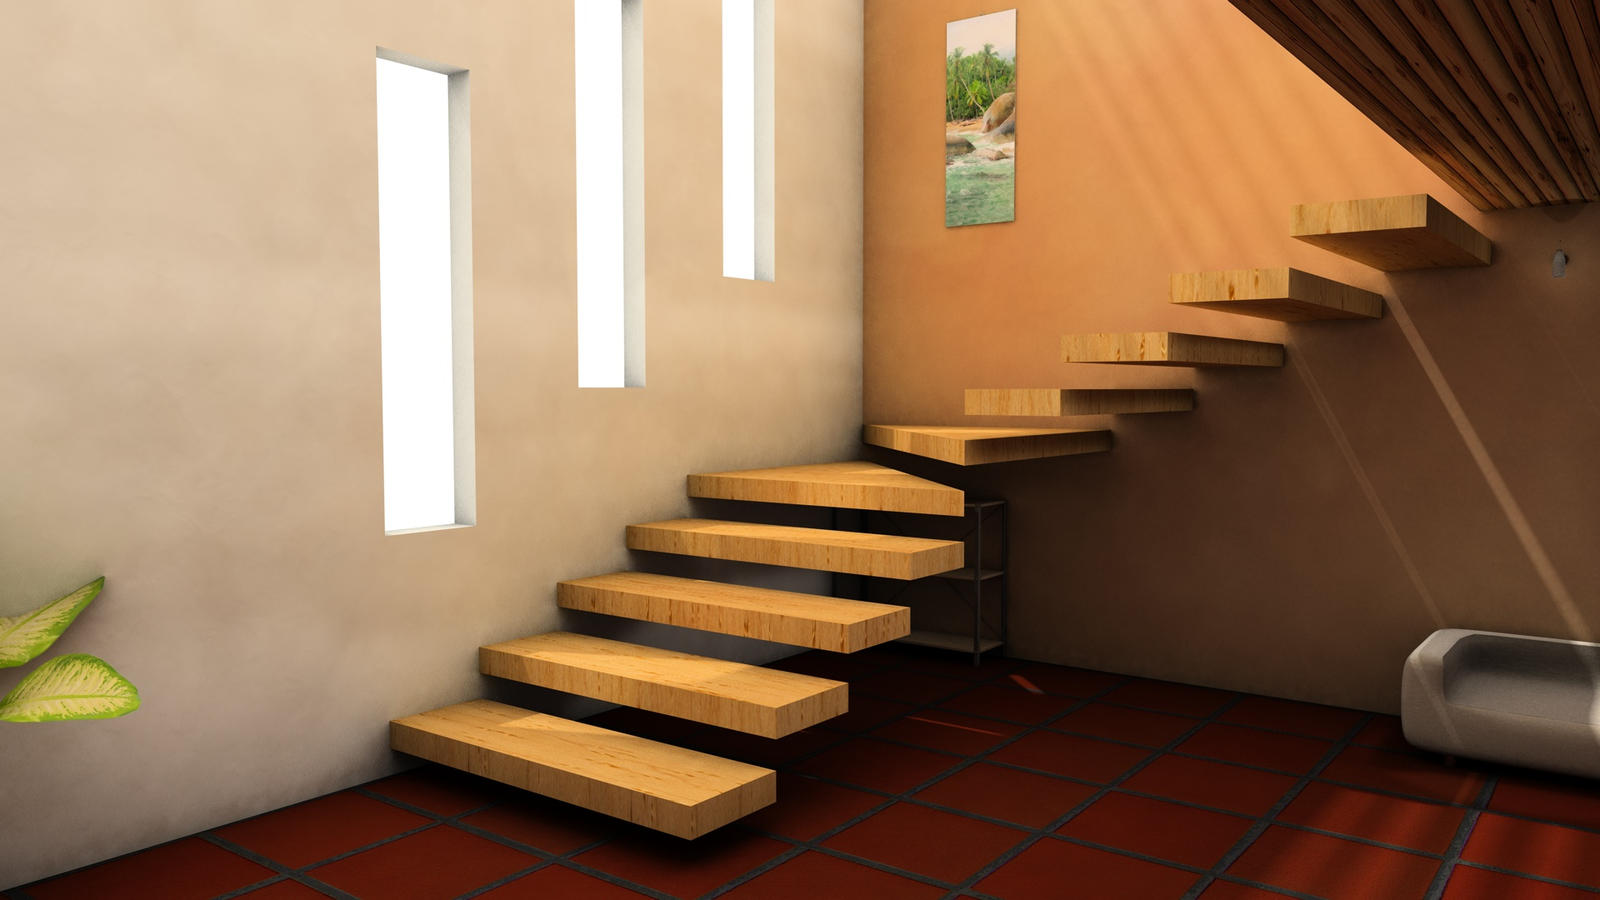 Interior render stairs 2 by capsat on deviantart - Interesting interior designs ...